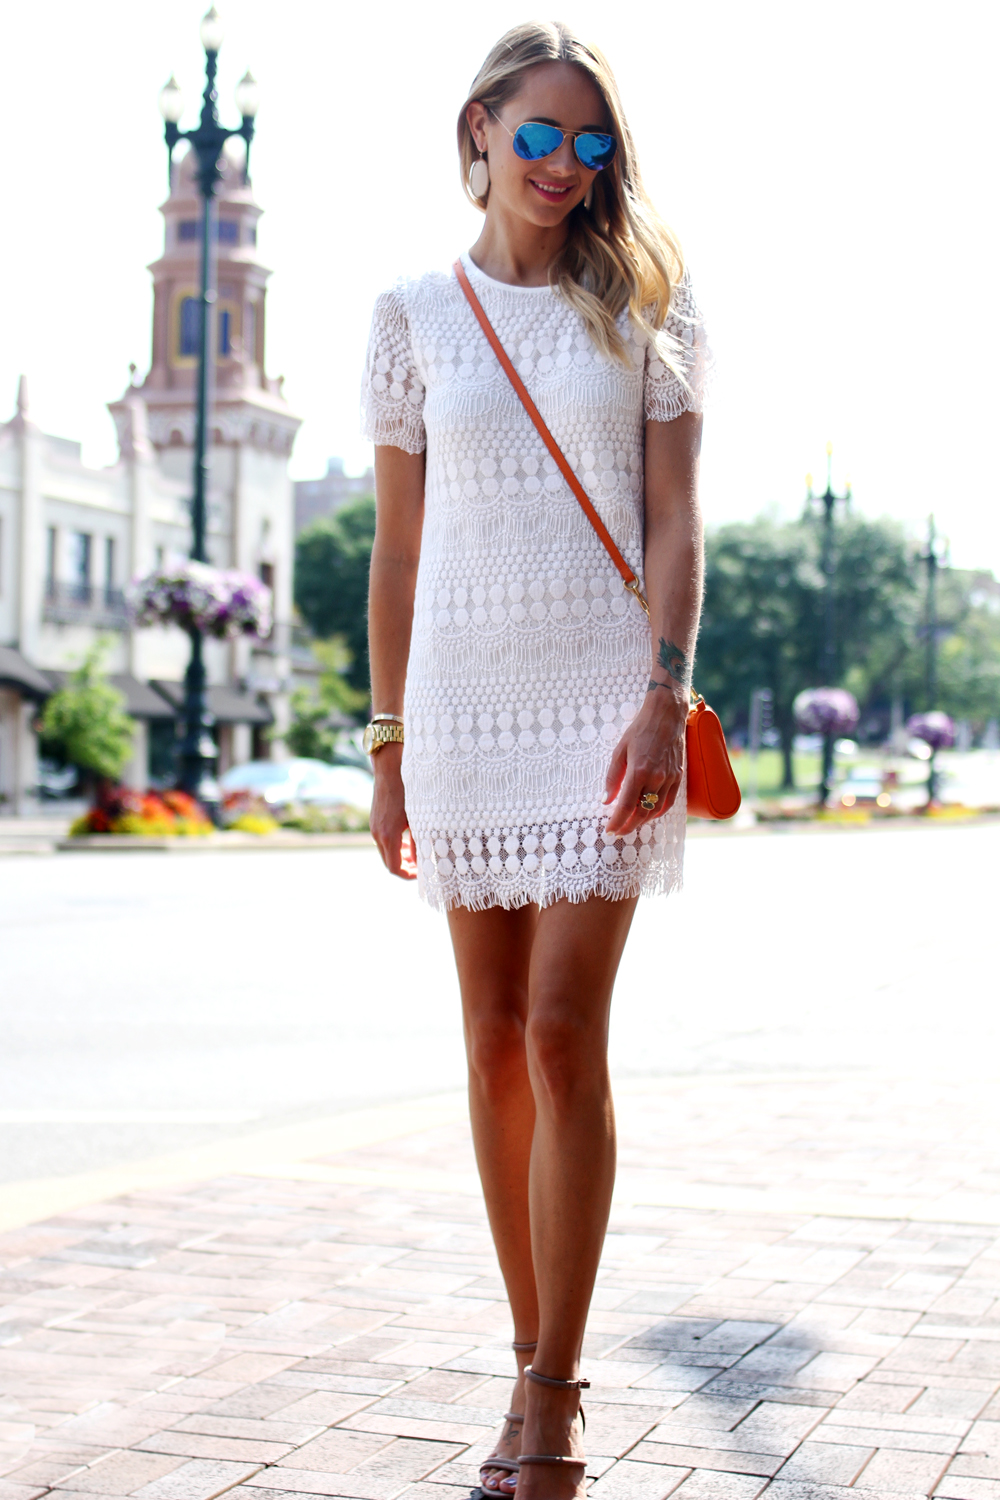 Amy Jackson is wearing a white short sleeve lace dress from Sheinside, bag from Gigi New York, shoes from Forever21 and blue mirrored sunglasses from RayBan